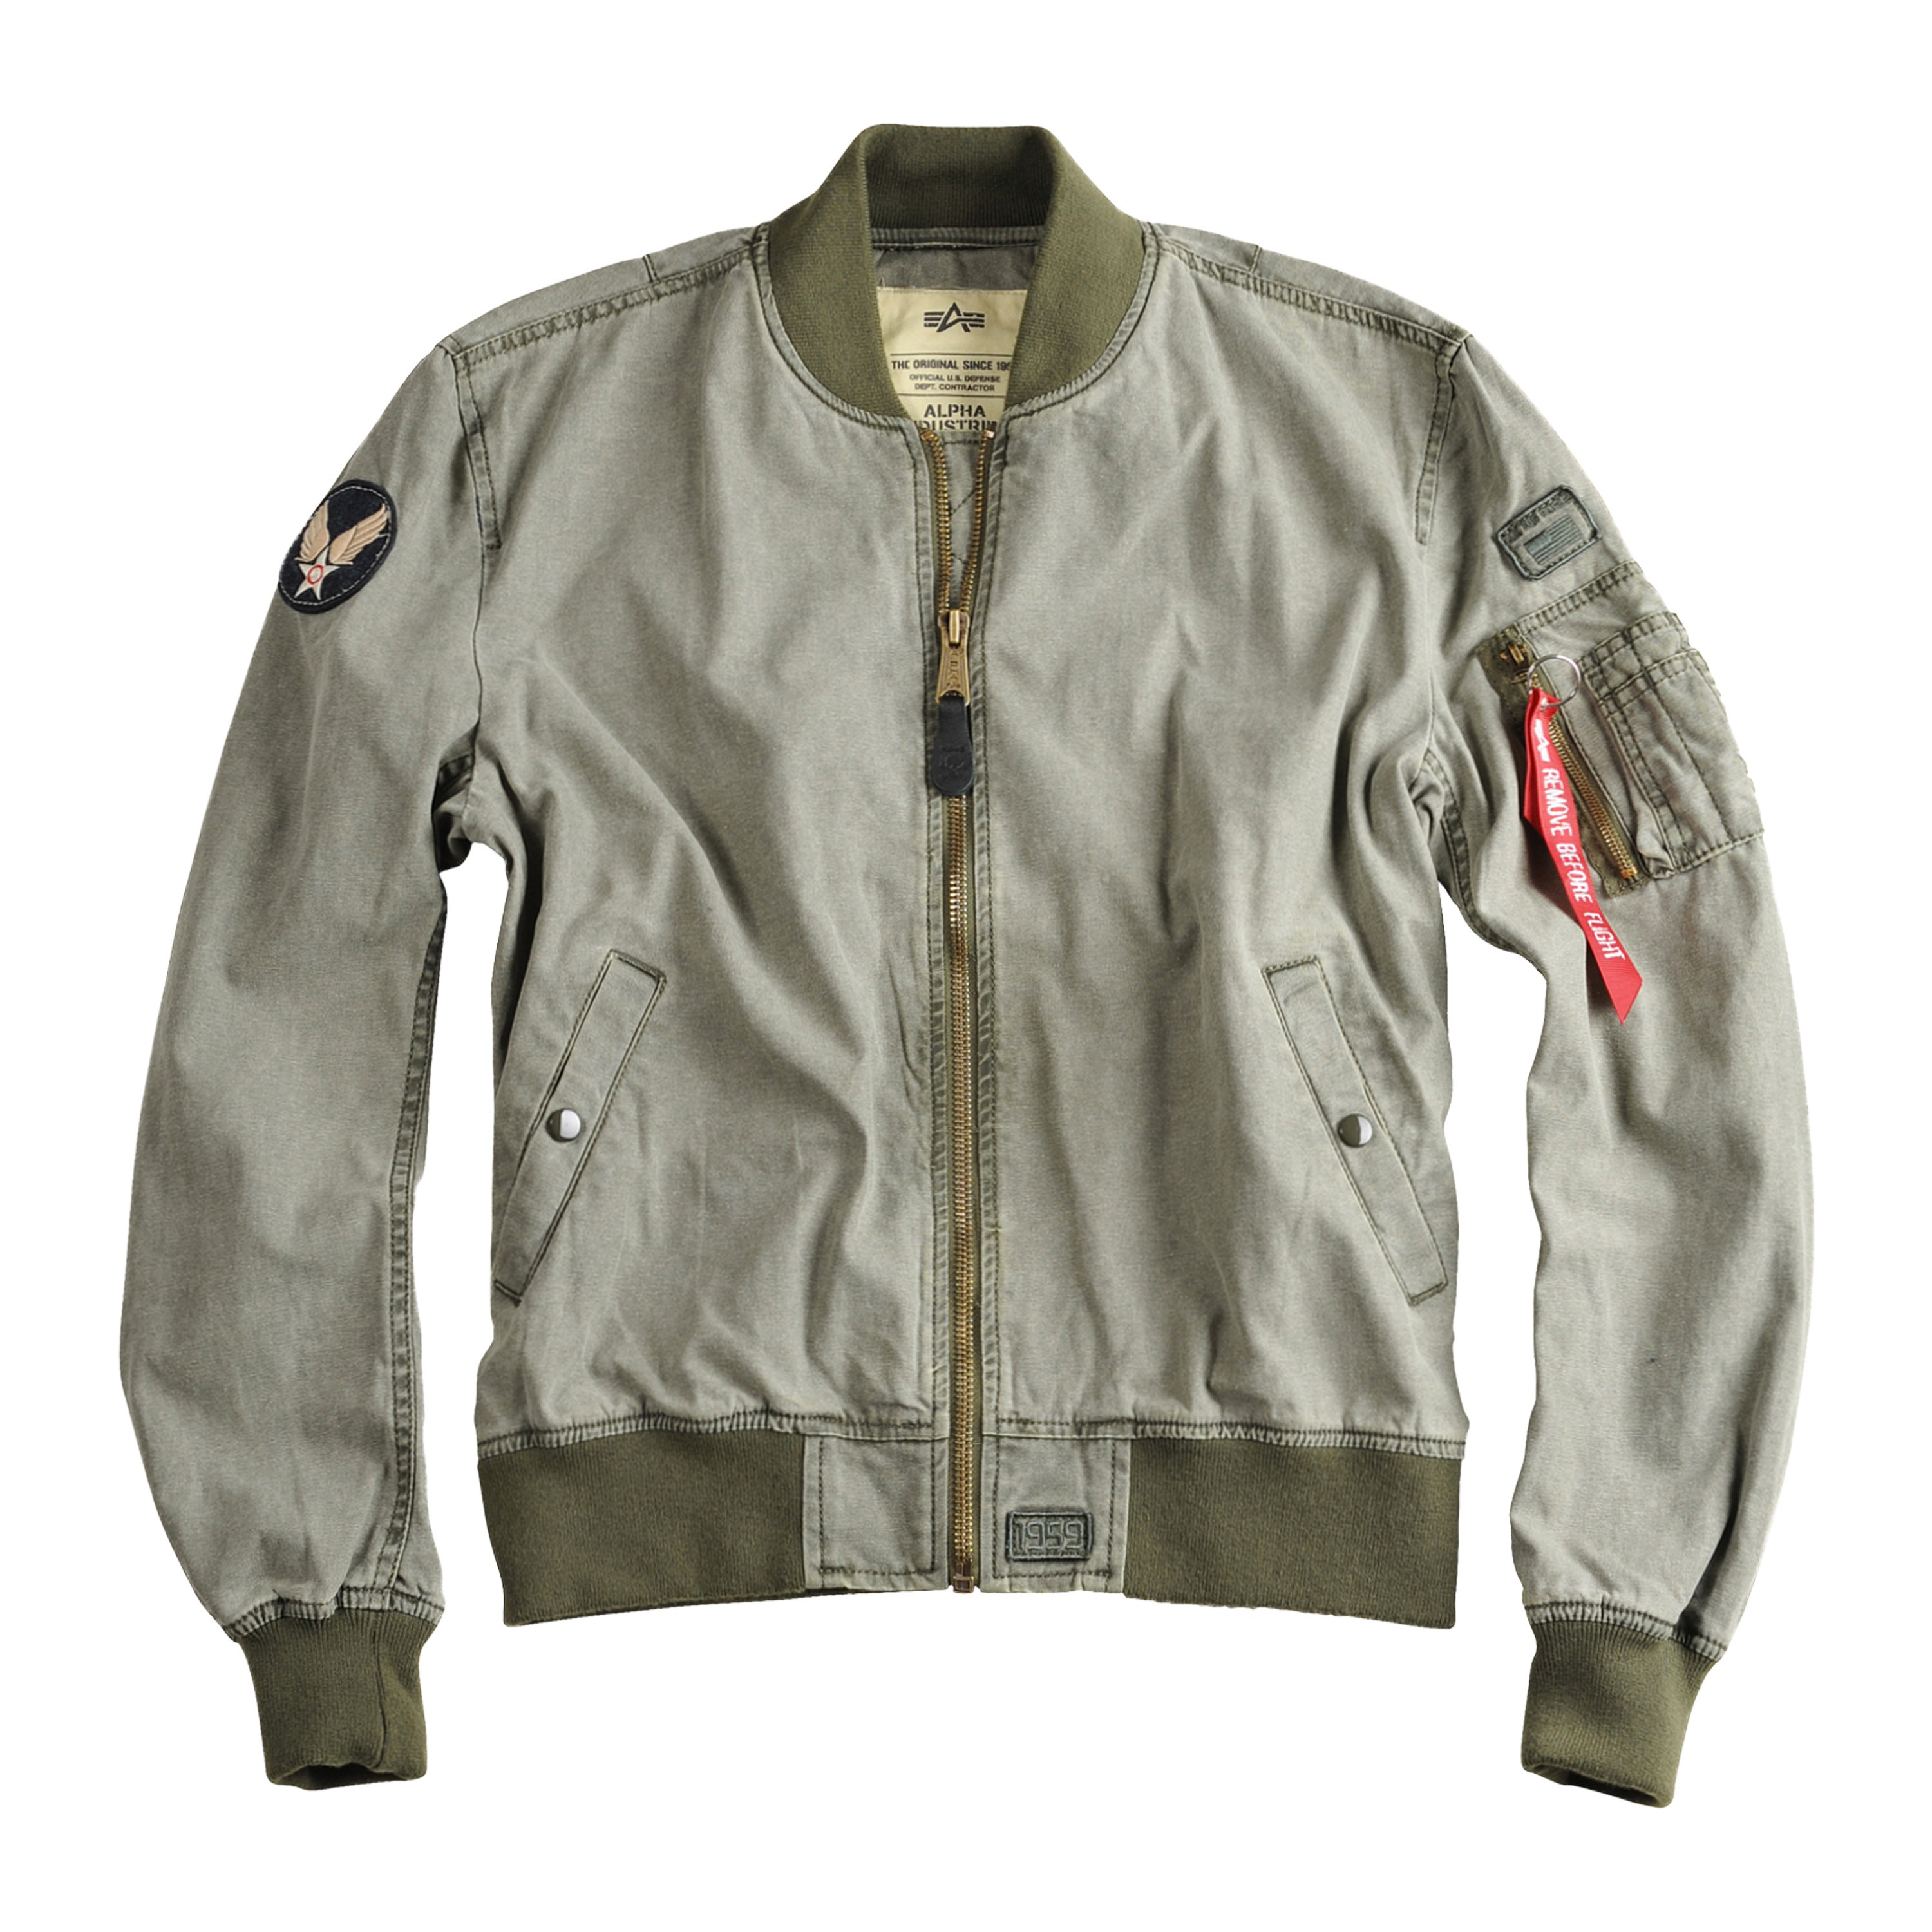 Giacca Volo Alpha Industries MA1 Groundcrew oliva